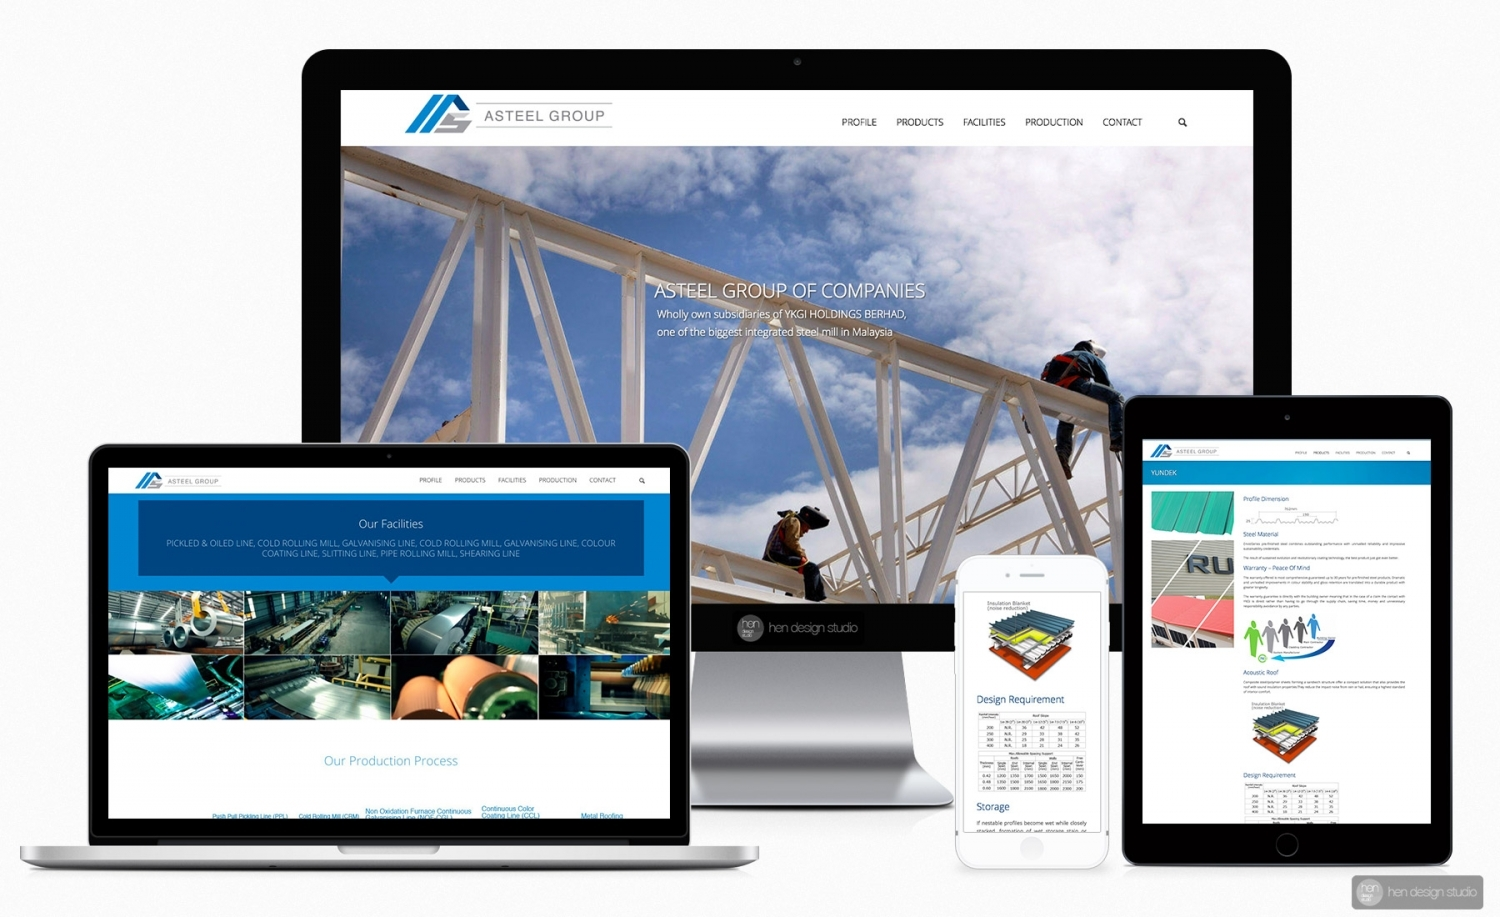 Asteel Group of Companies official website design and setup